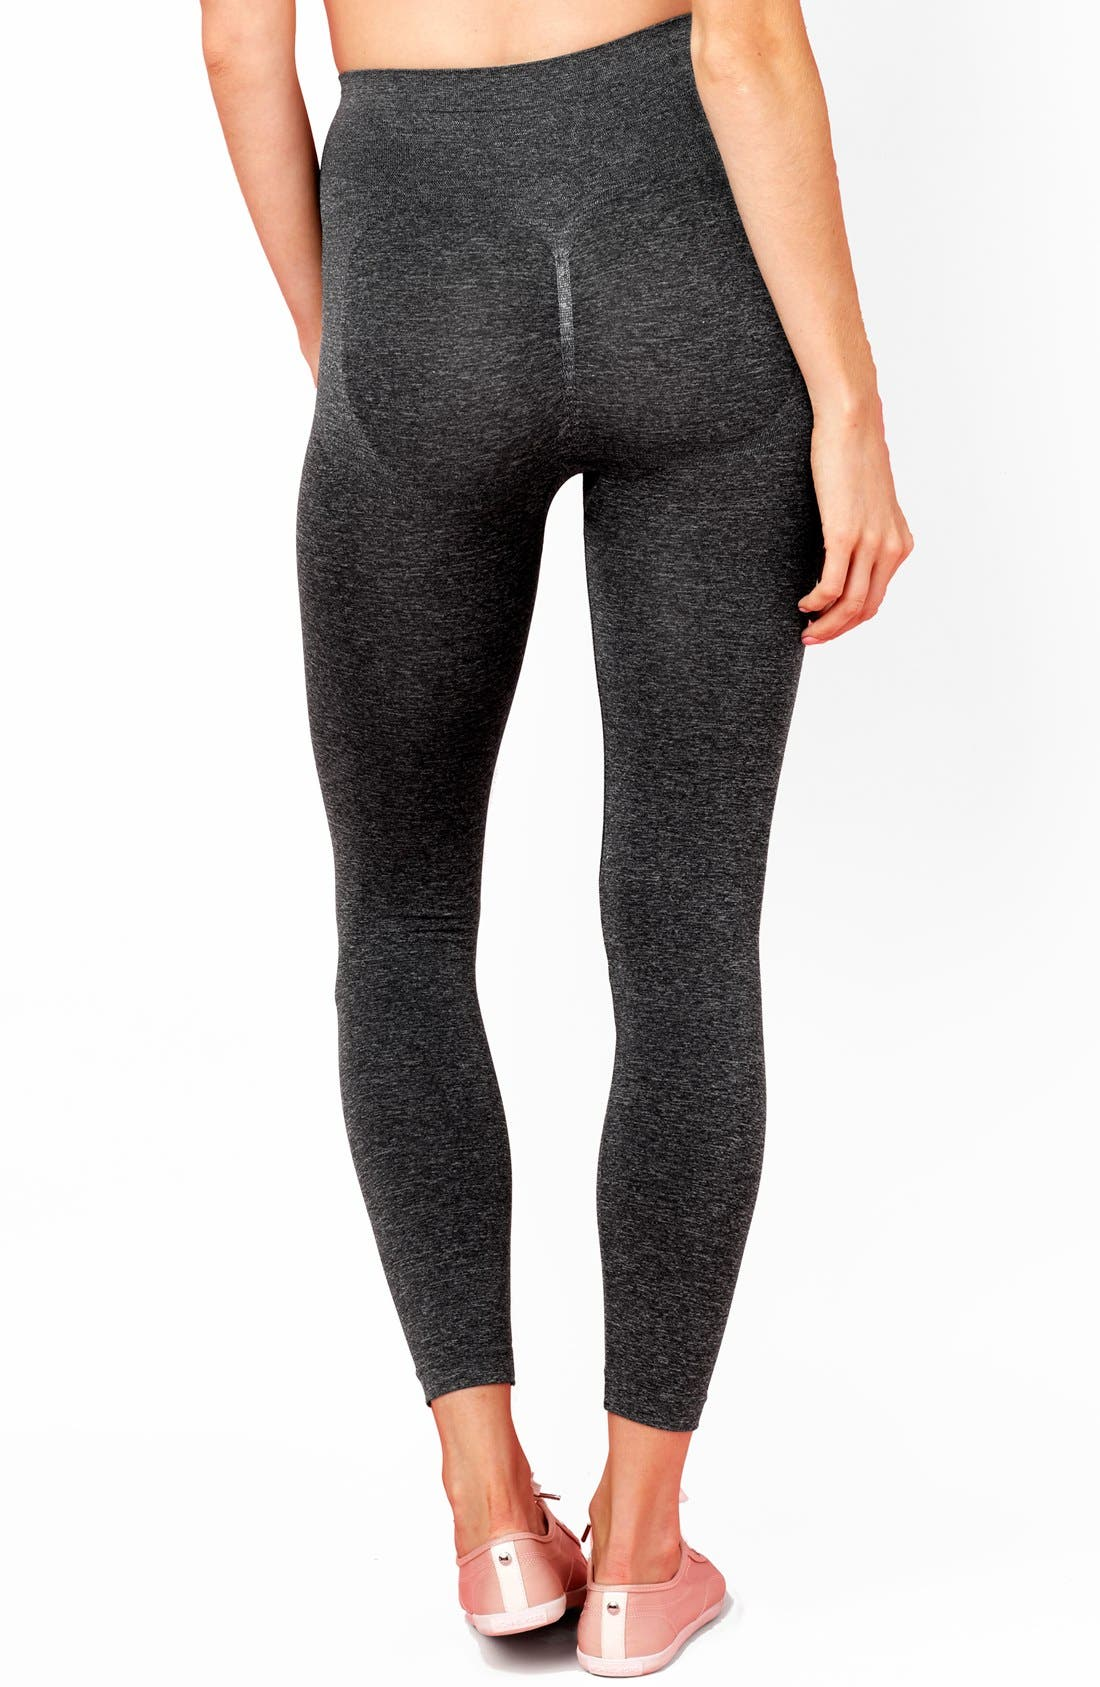 Tummy Control Postpartum Leggings,                             Alternate thumbnail 2, color,                             030